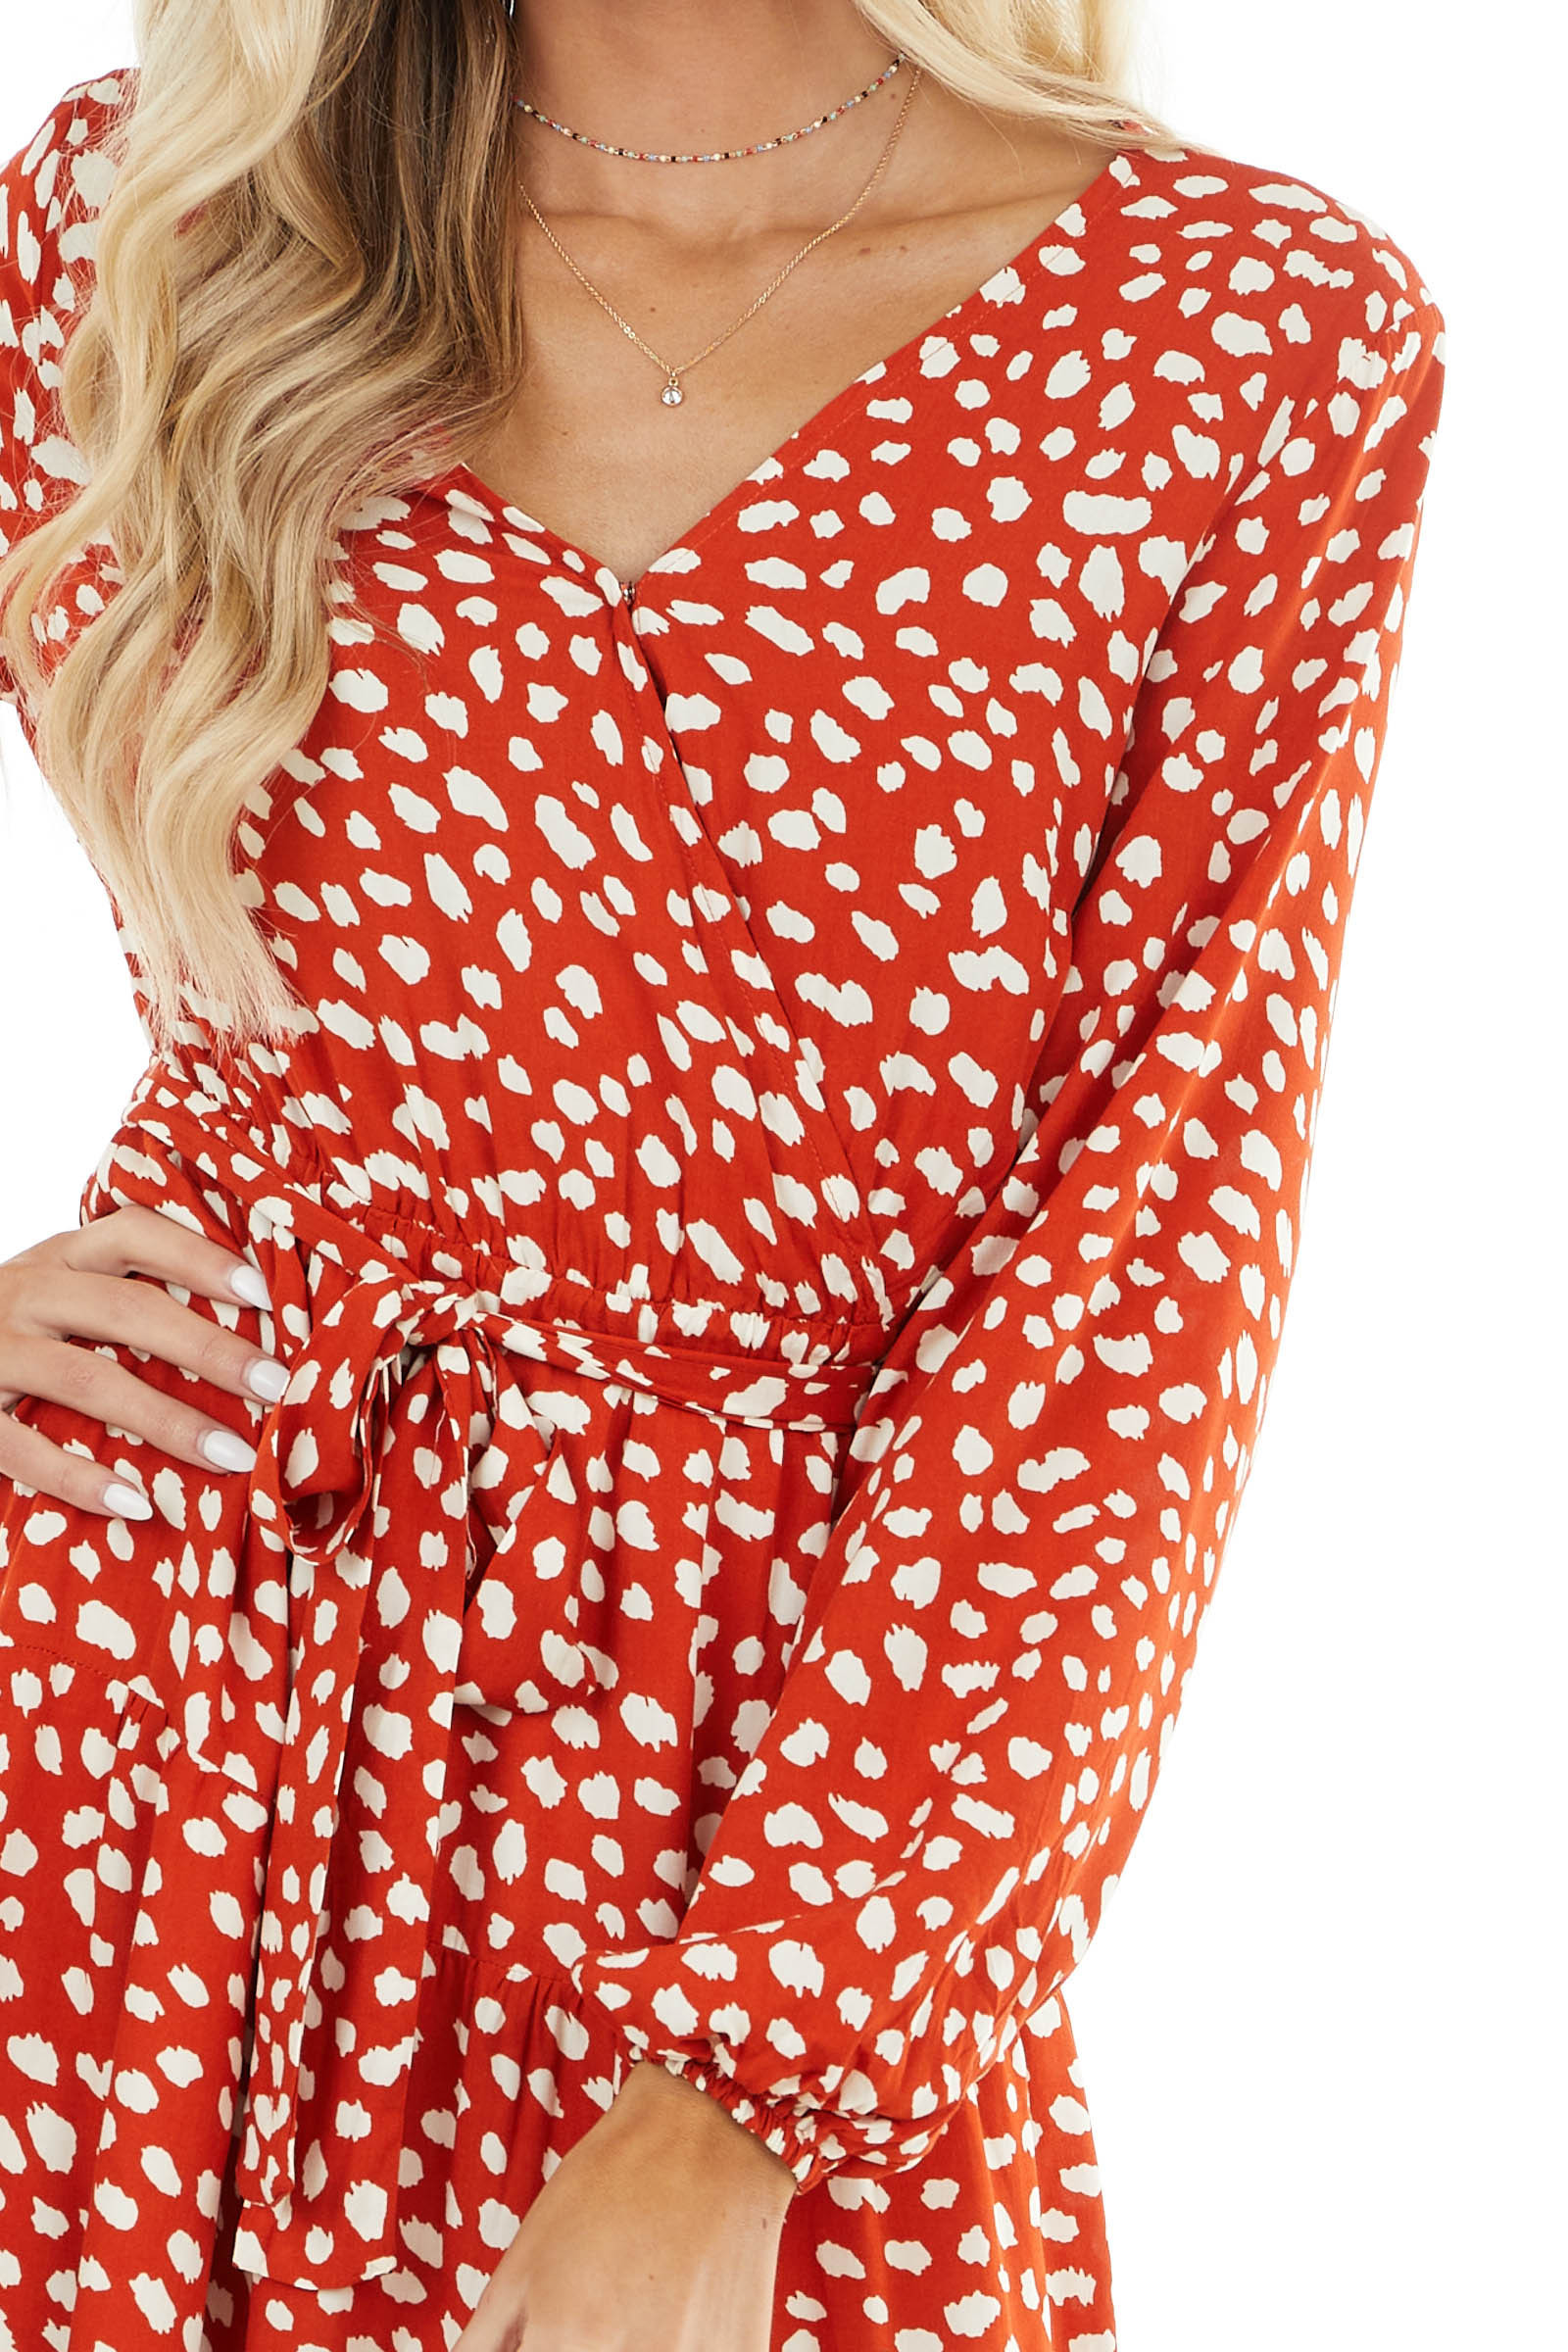 Rust Cheetah Print Surplice Midi Dress with Cinch Waist